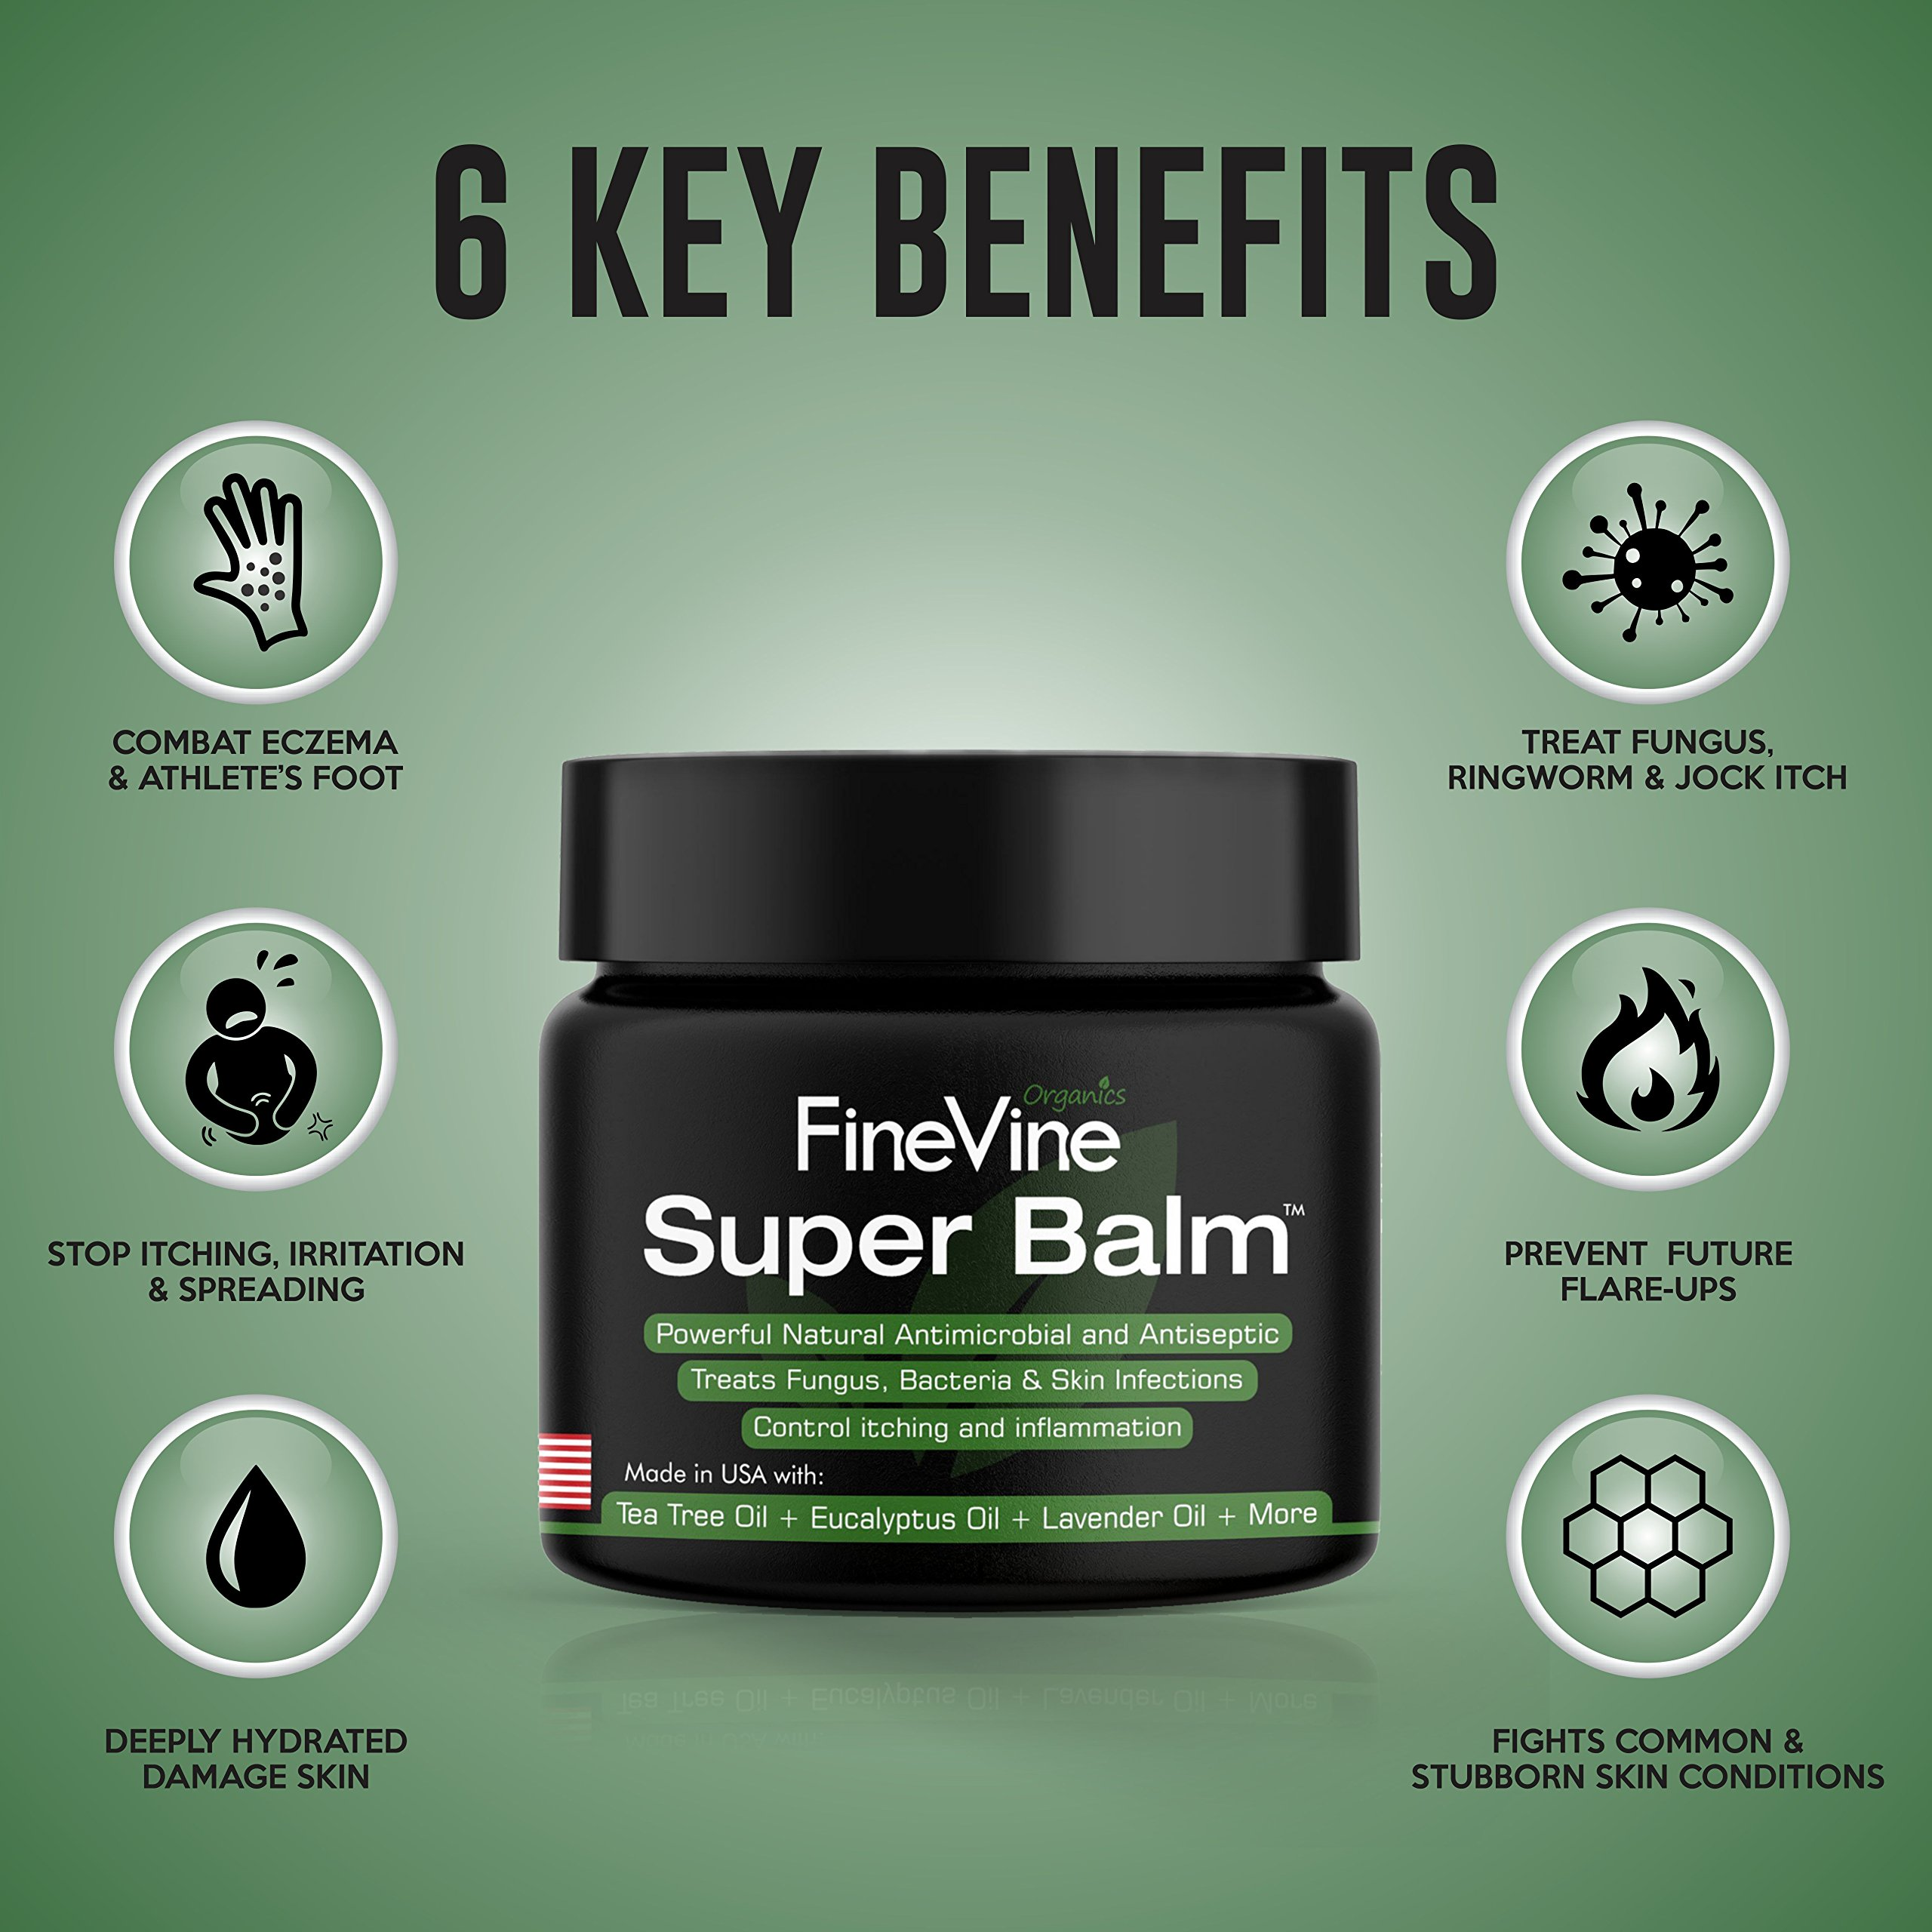 Antifungal Balm - Made in USA - Helps Treat Eczema, Ringworm, Jock Itch, Athletes Foot and Nail Fungal Infections - Best Natural Ointment to Soothes Itchy, Scaly or Cracked Skin. by FineVine (Image #3)